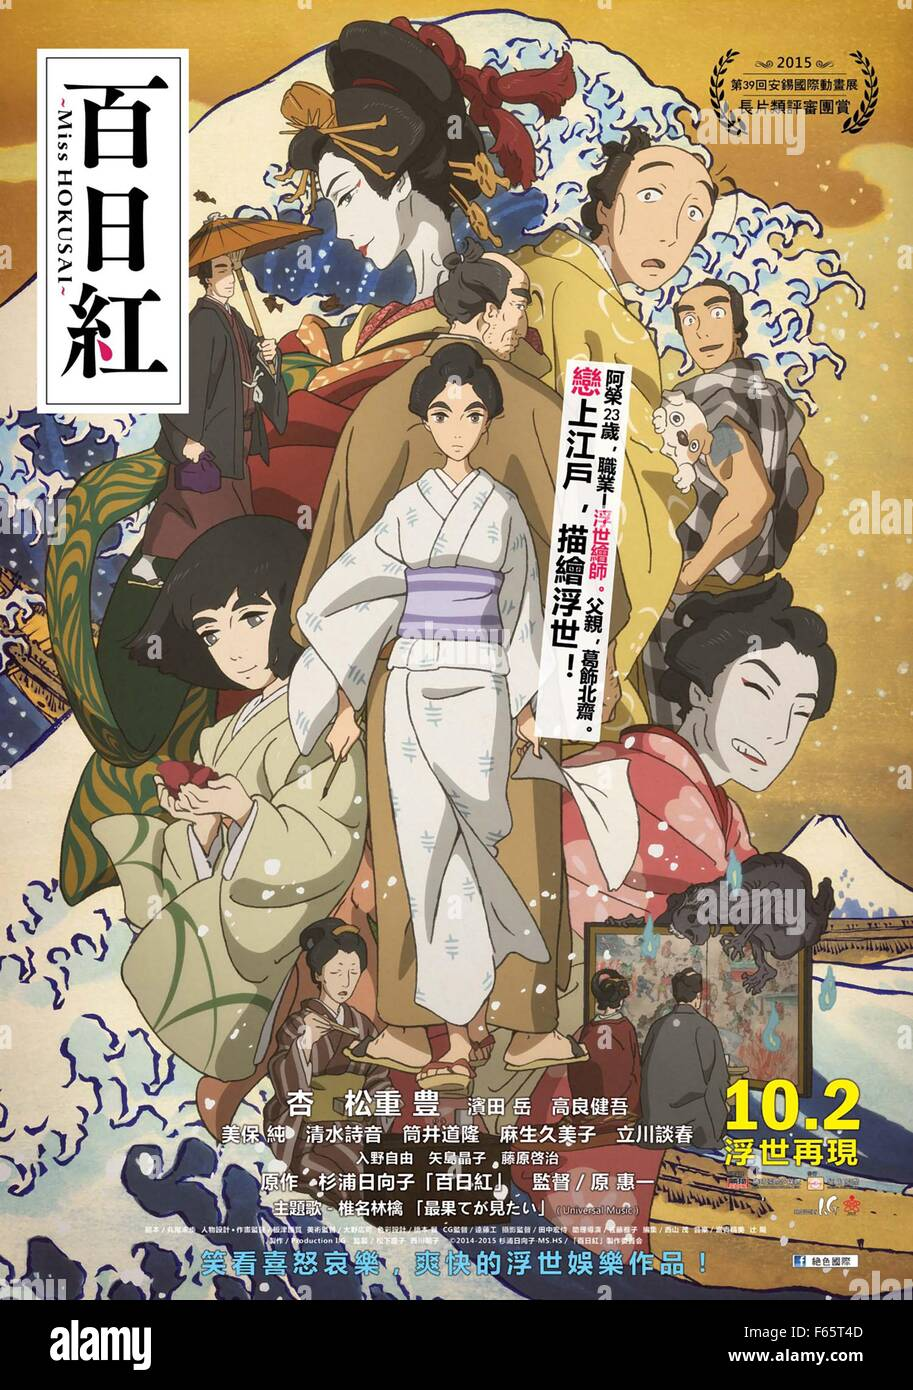 Miss hokusai sarusuberi miss hokusai year 2015 japan director keiichi hara animation movie poster japan